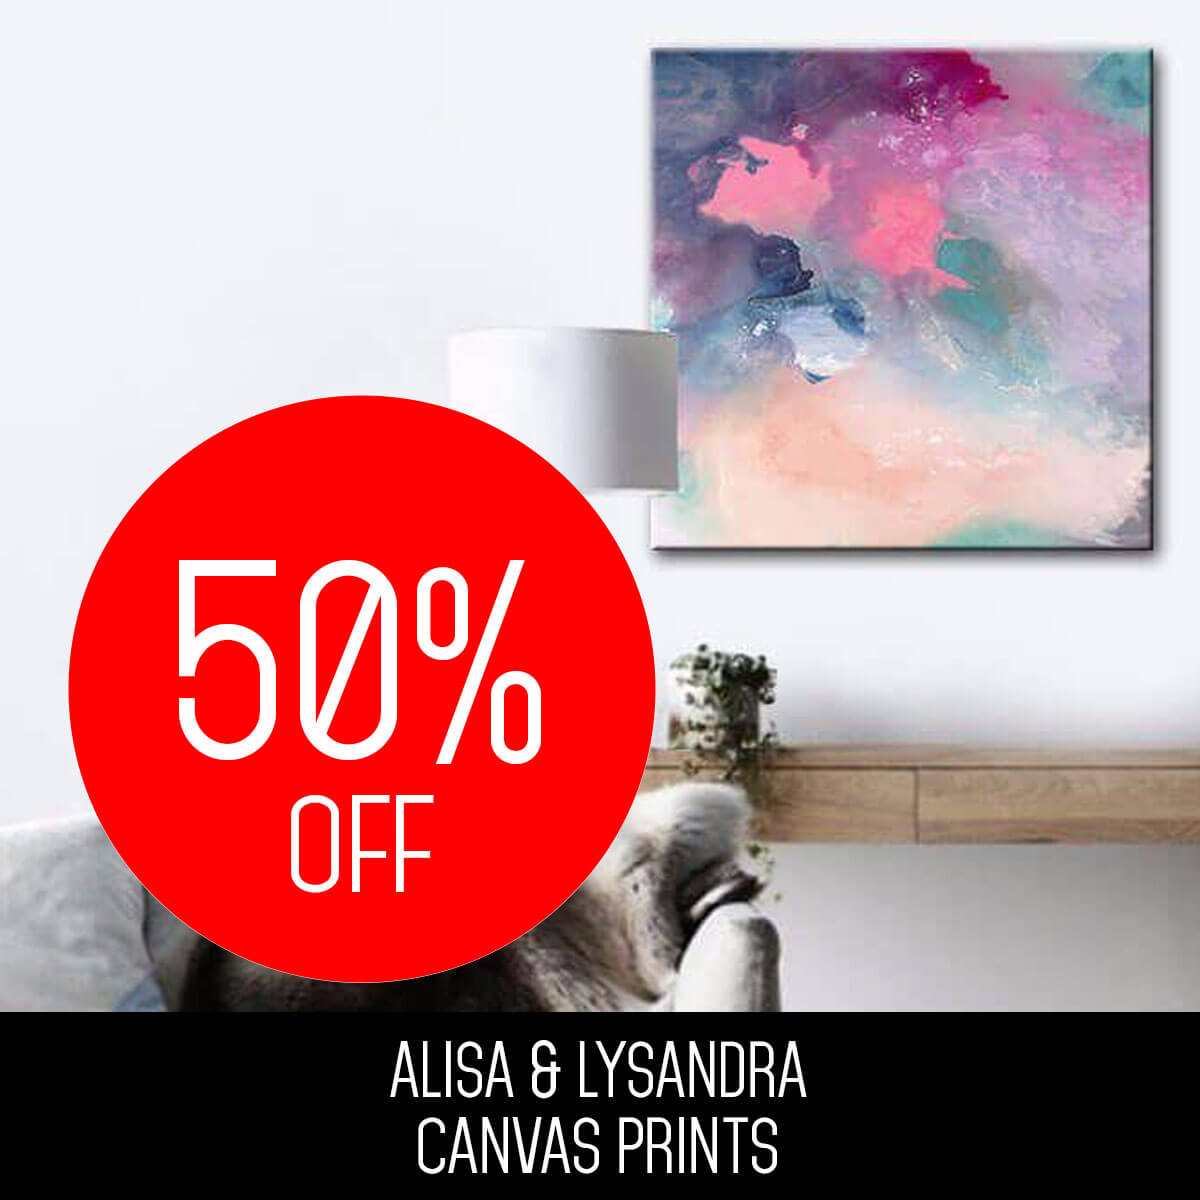 ALISA & LYSANDRA CANVAS PRINTS